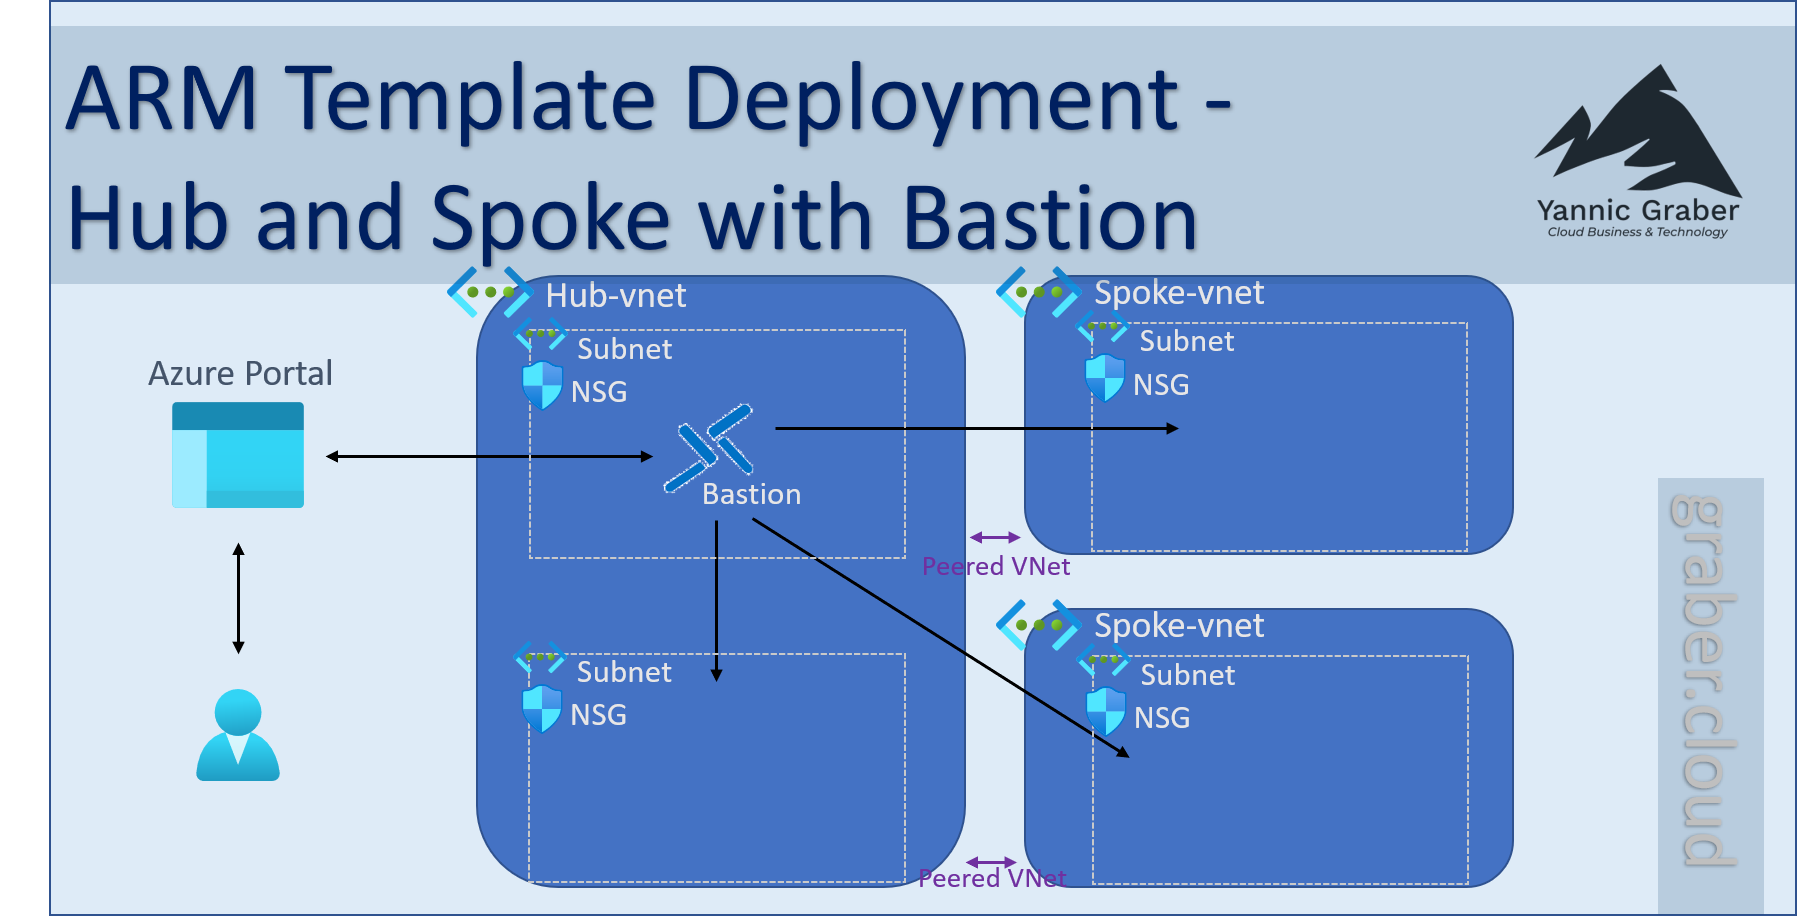 ARM Template Hub and Spoke with Bastion